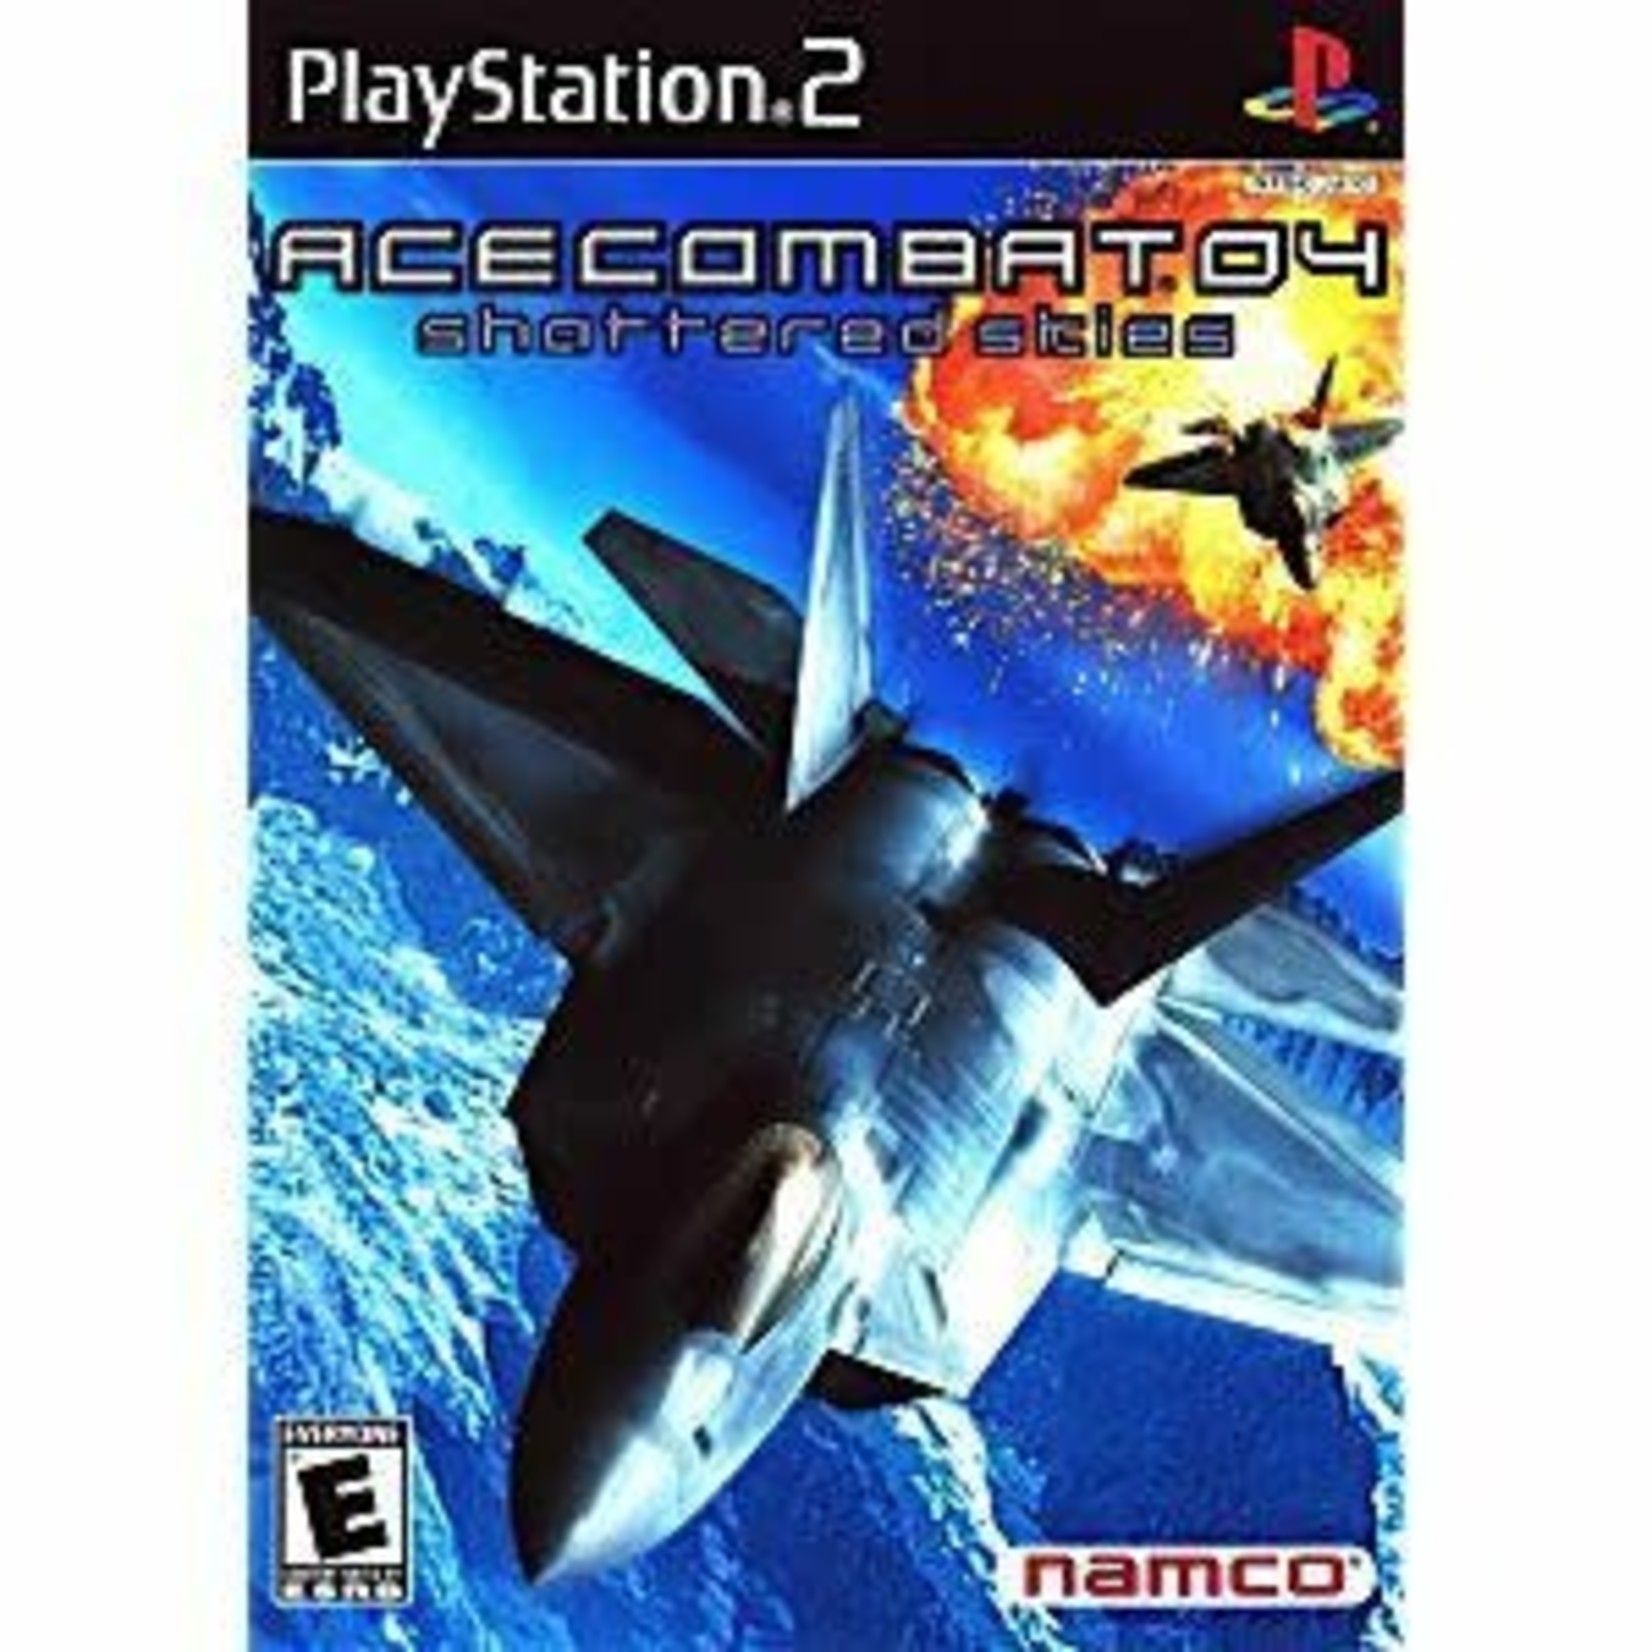 PS2U-Ace Combat 4 Shattered Skies